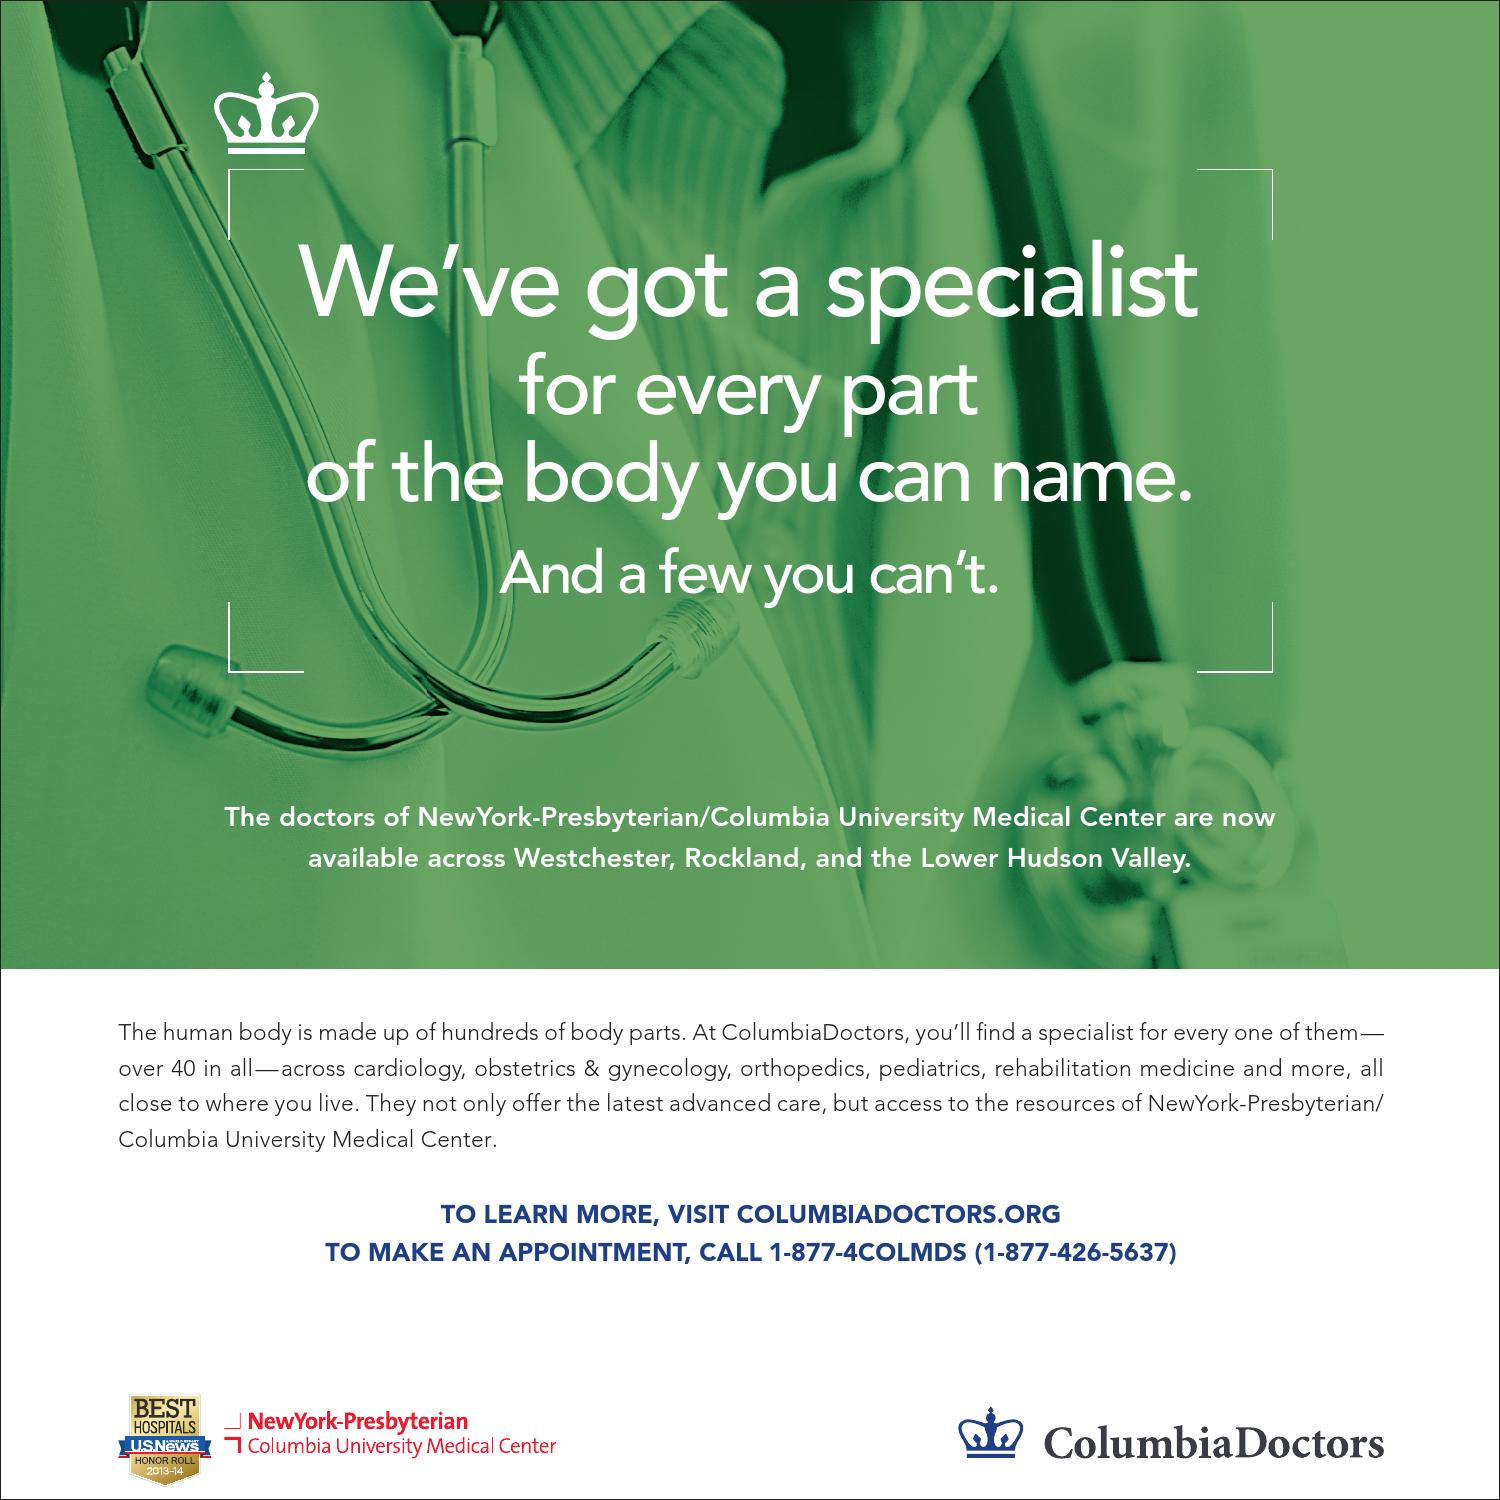 ColumbiaDoctors Westchester Advertising Campaign, 2014 by